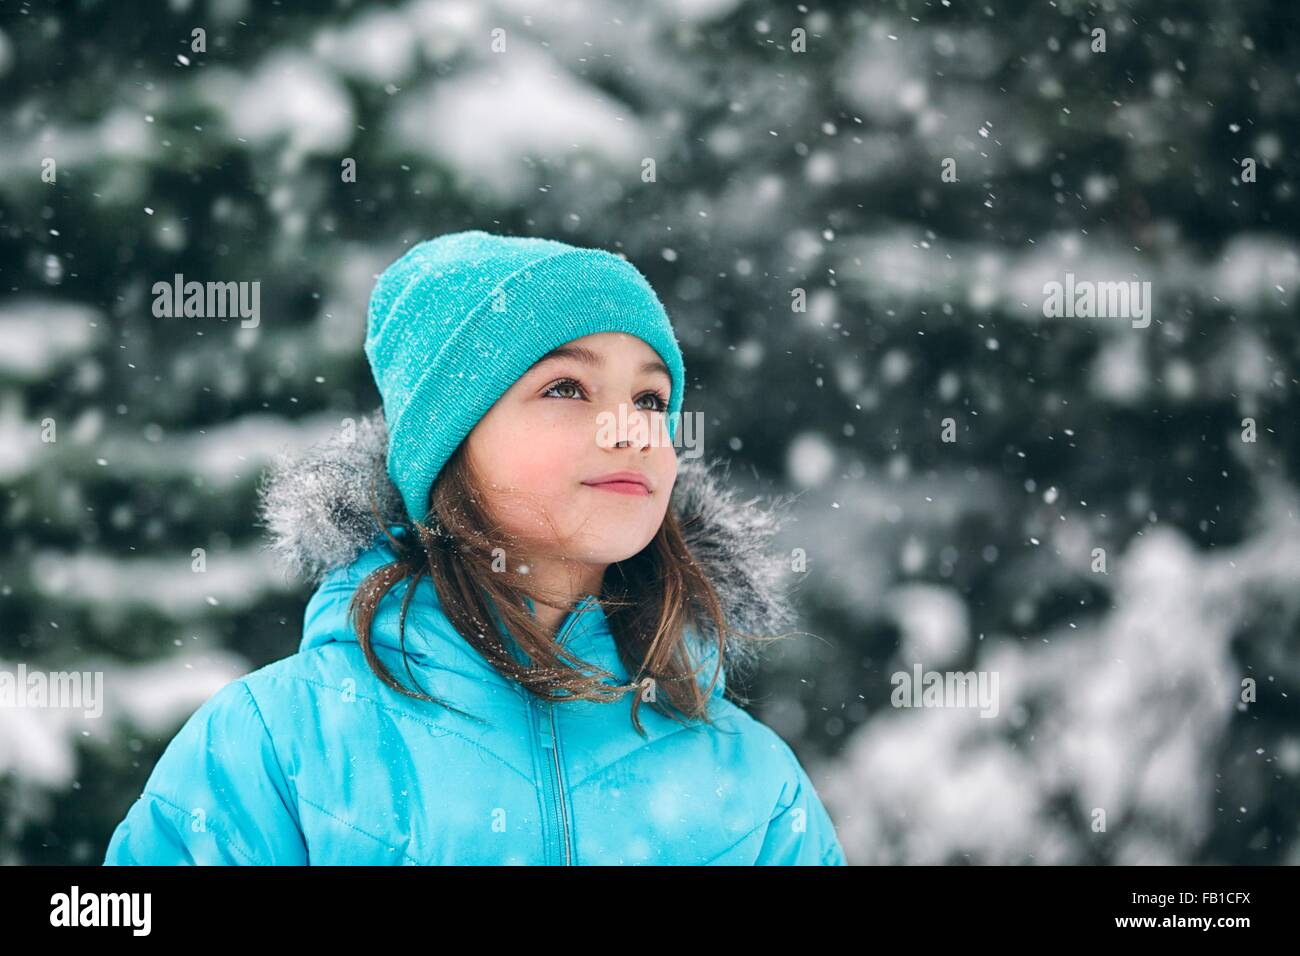 Girl wearing Knit hat looking away, neige Banque D'Images